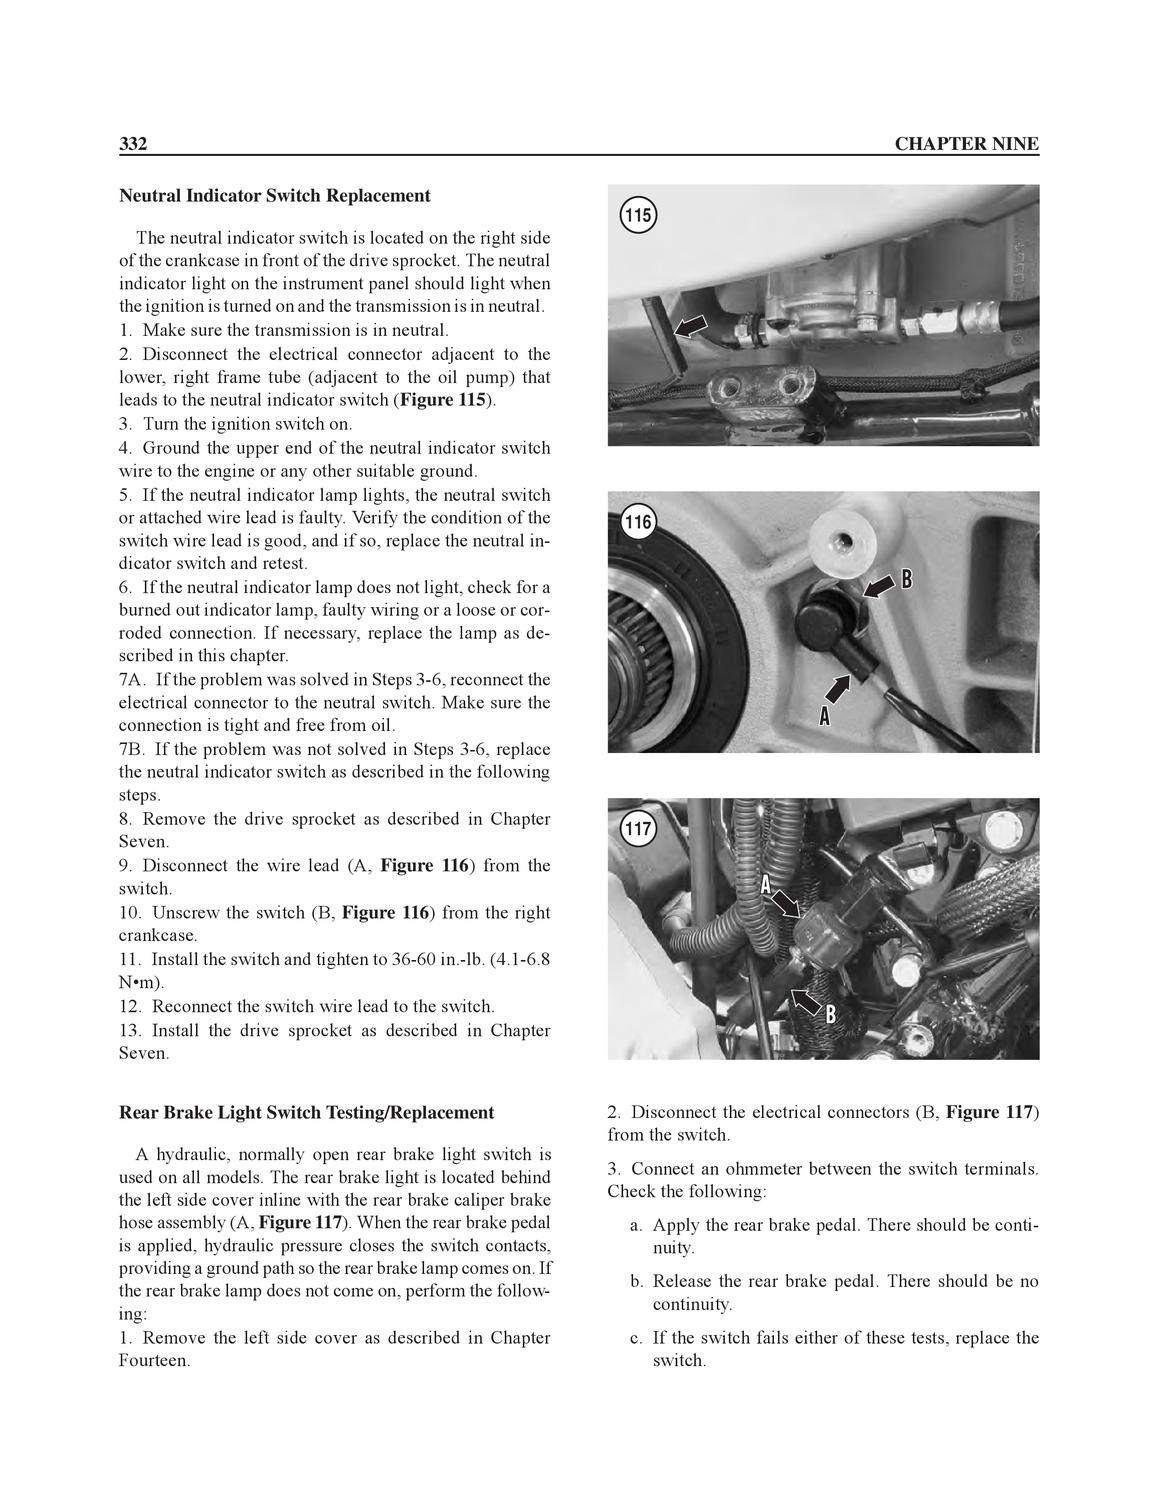 Harley Davidson Sportster Repair Manual 04-06 by Brian Kohn